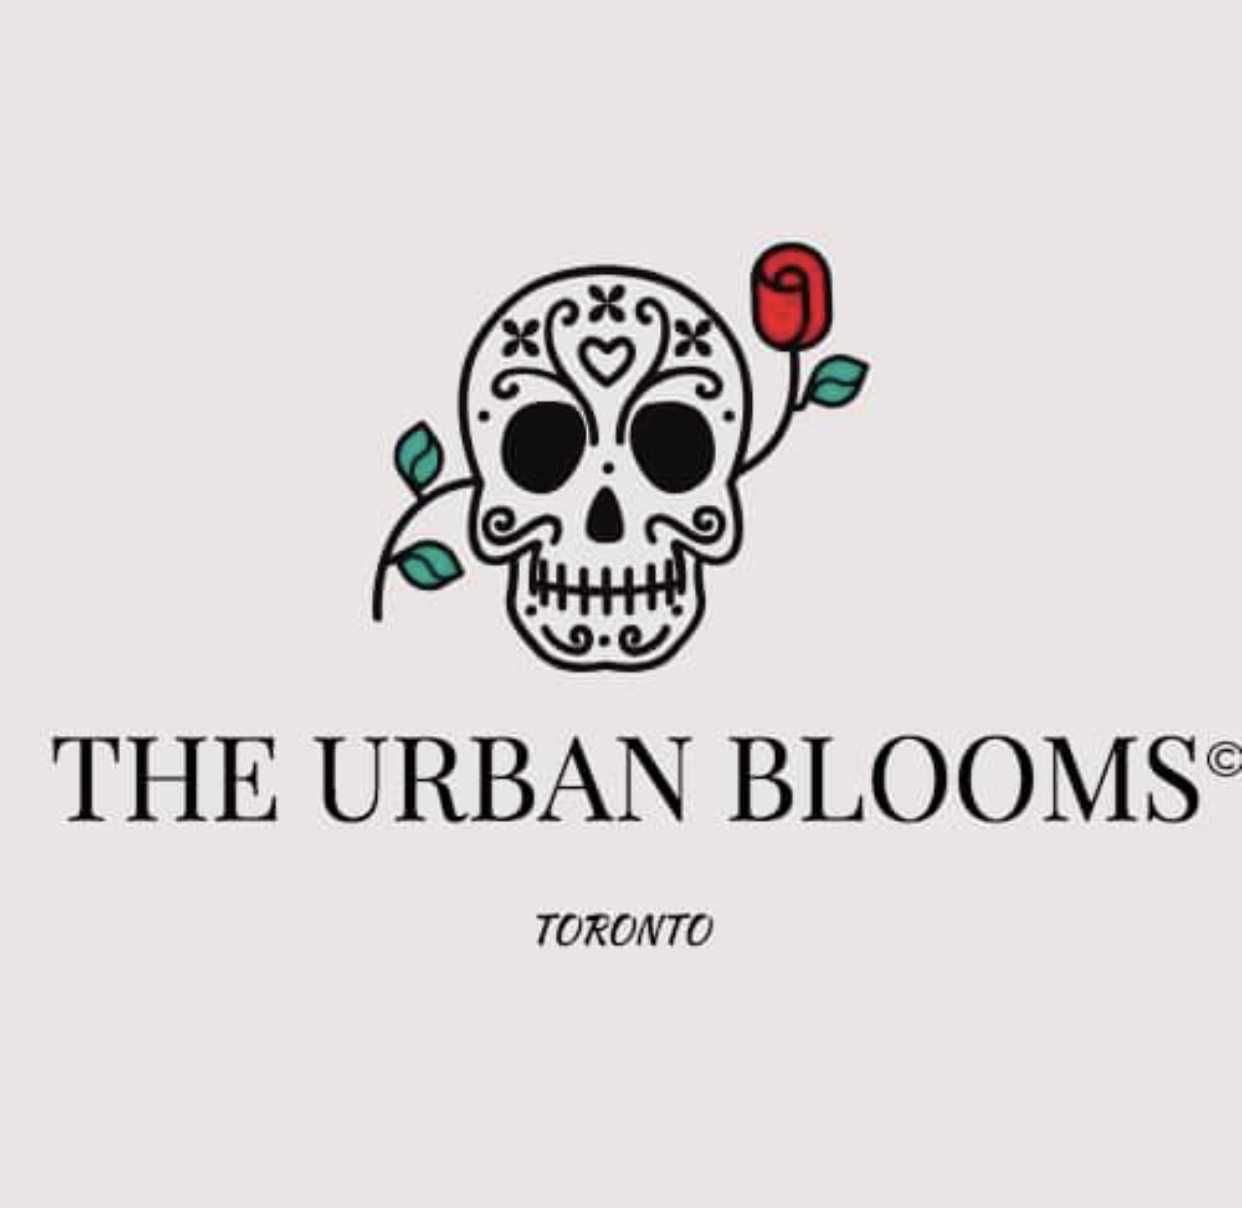 The Urban Blooms